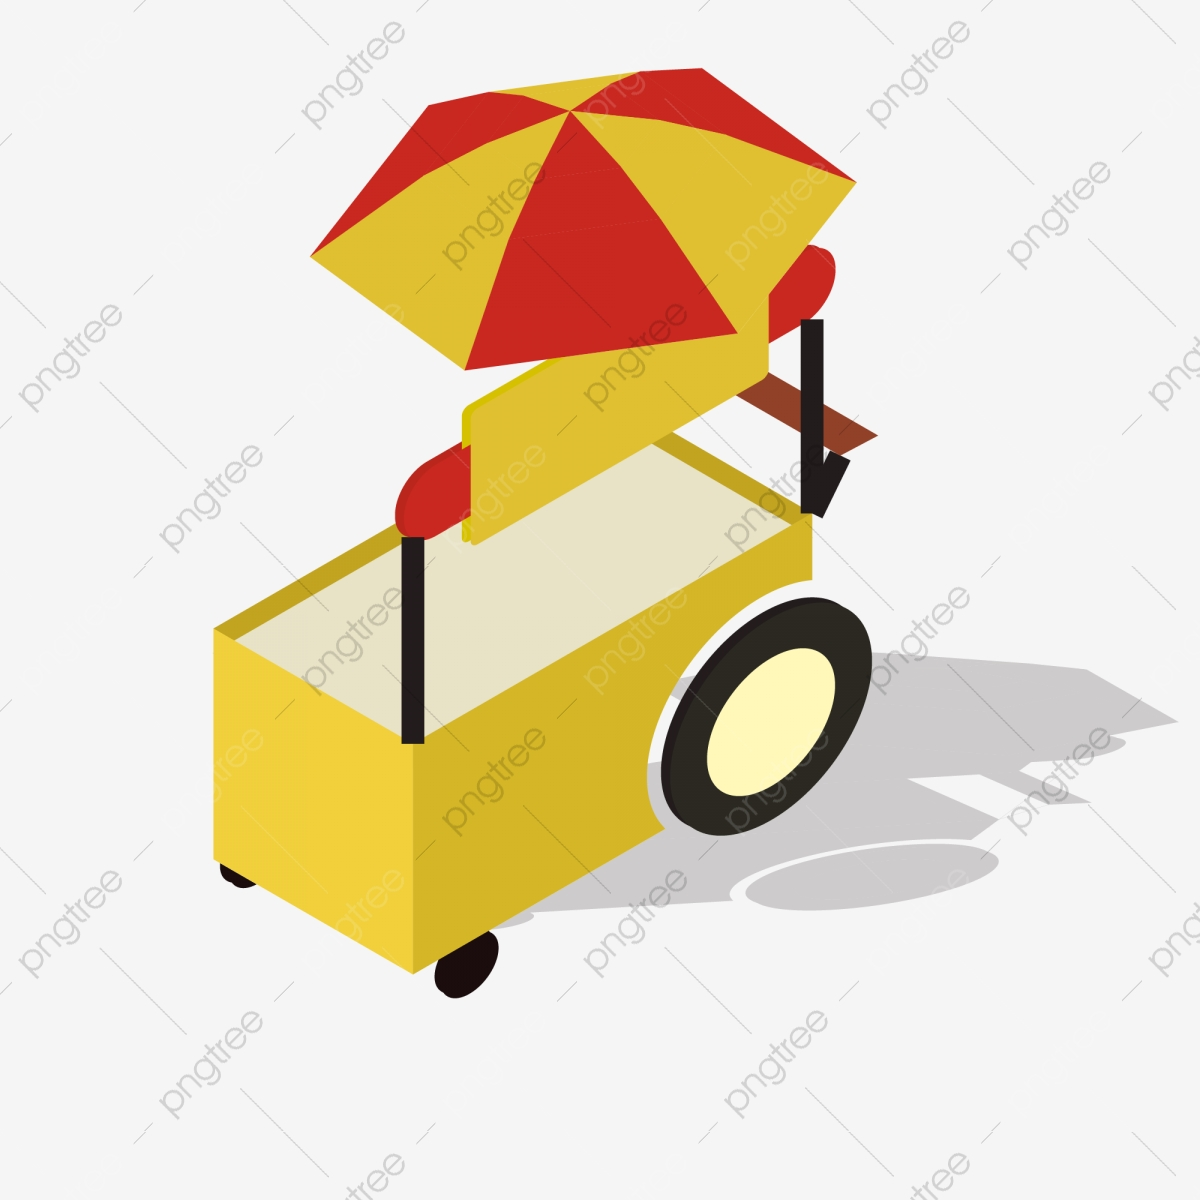 Snack cart clipart free library 2.5d Yellow Snack Cart Material Stereo, 2.5d, Yellow, Snack ... free library